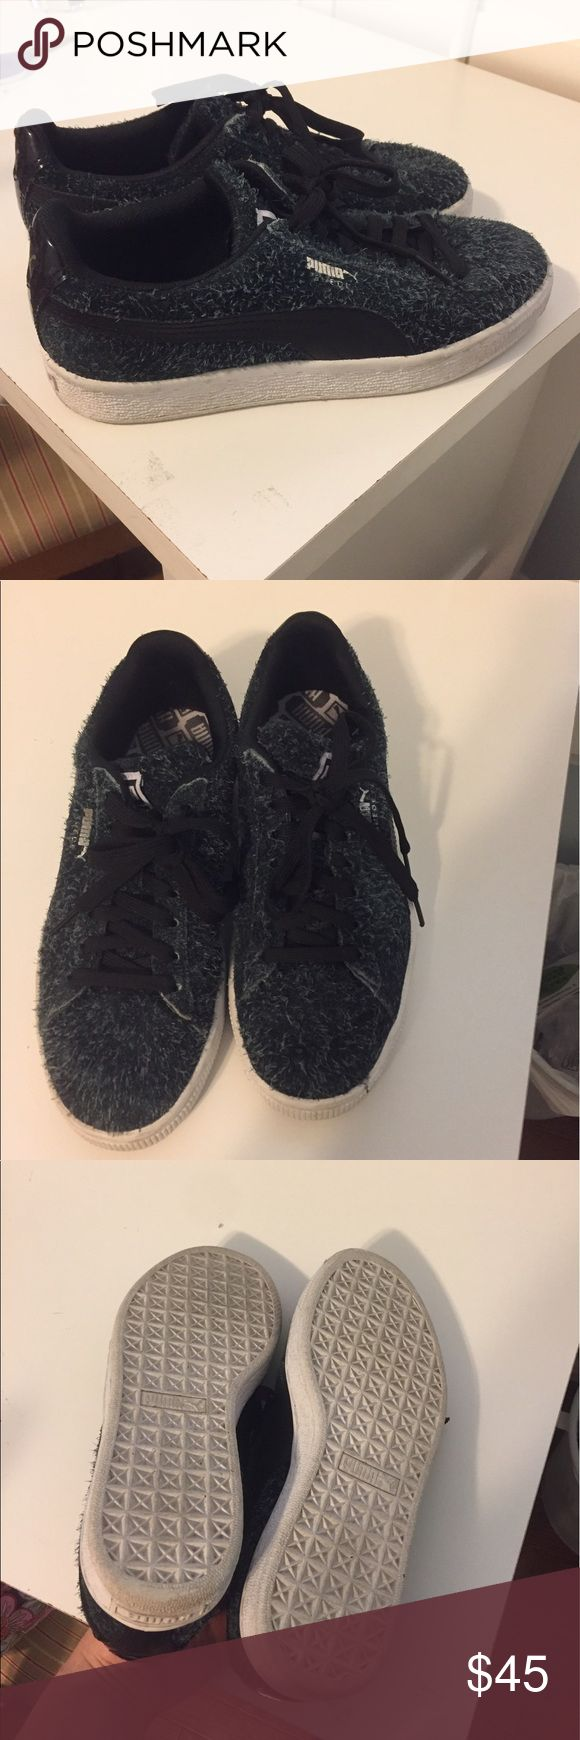 Details about puma womens suede classic rg black running shoes - Black And Navy Frayed Suede Pumas